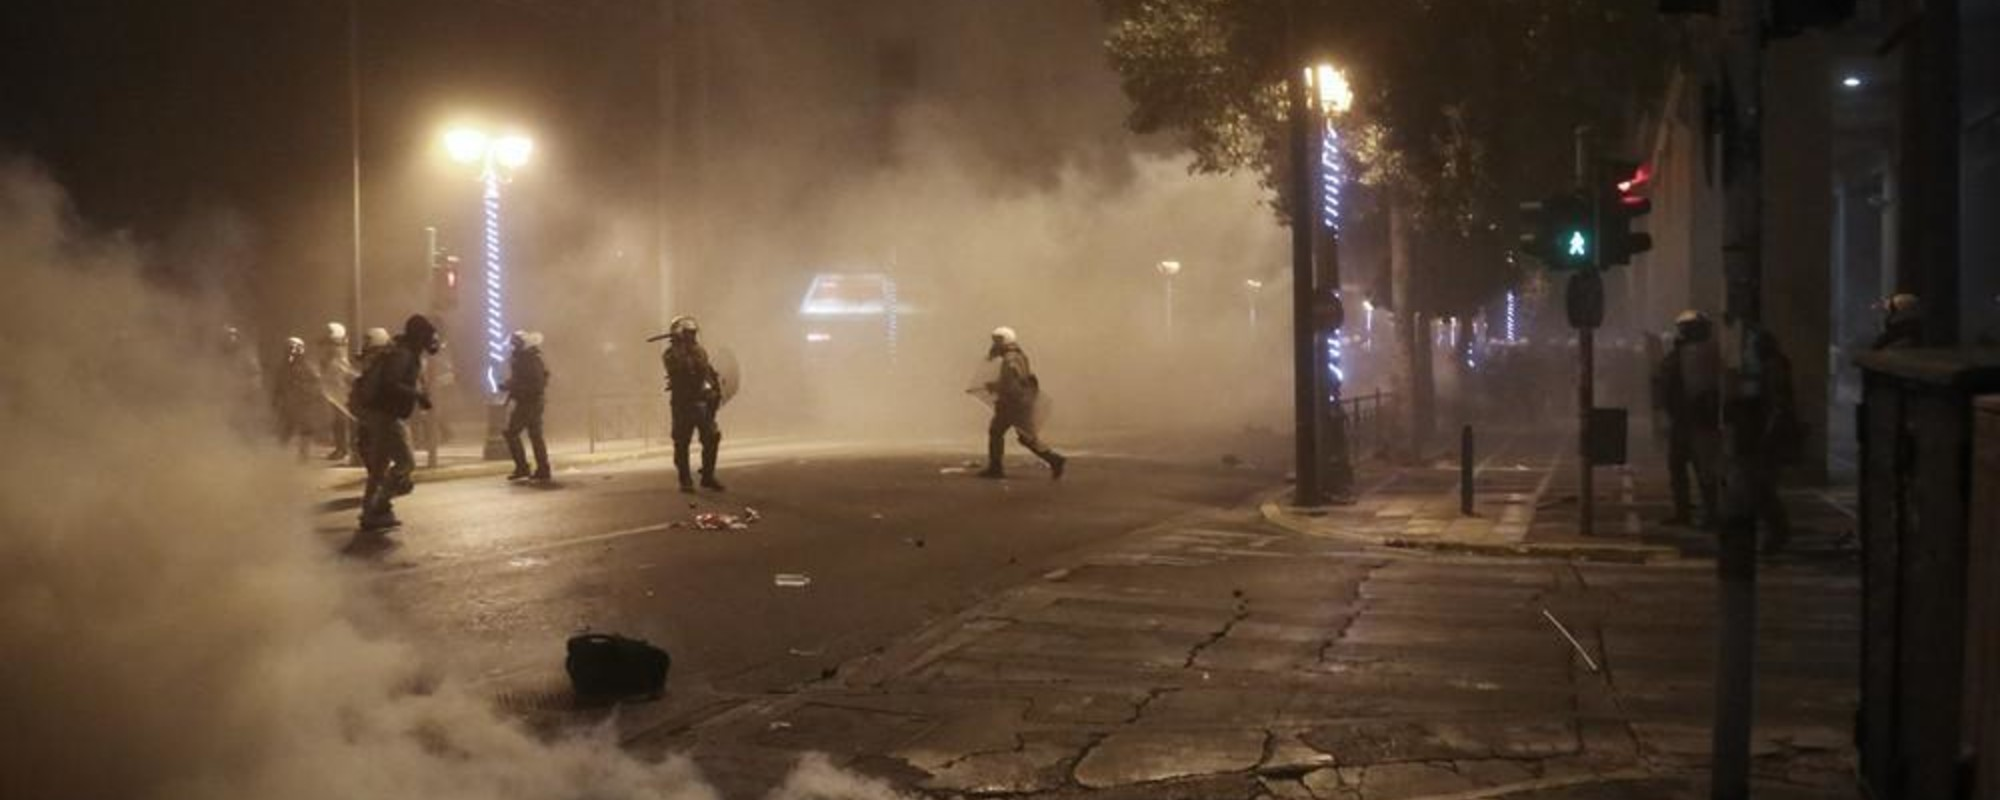 Athens Welcomed Obama with Molotov Bombs and Tear Gas